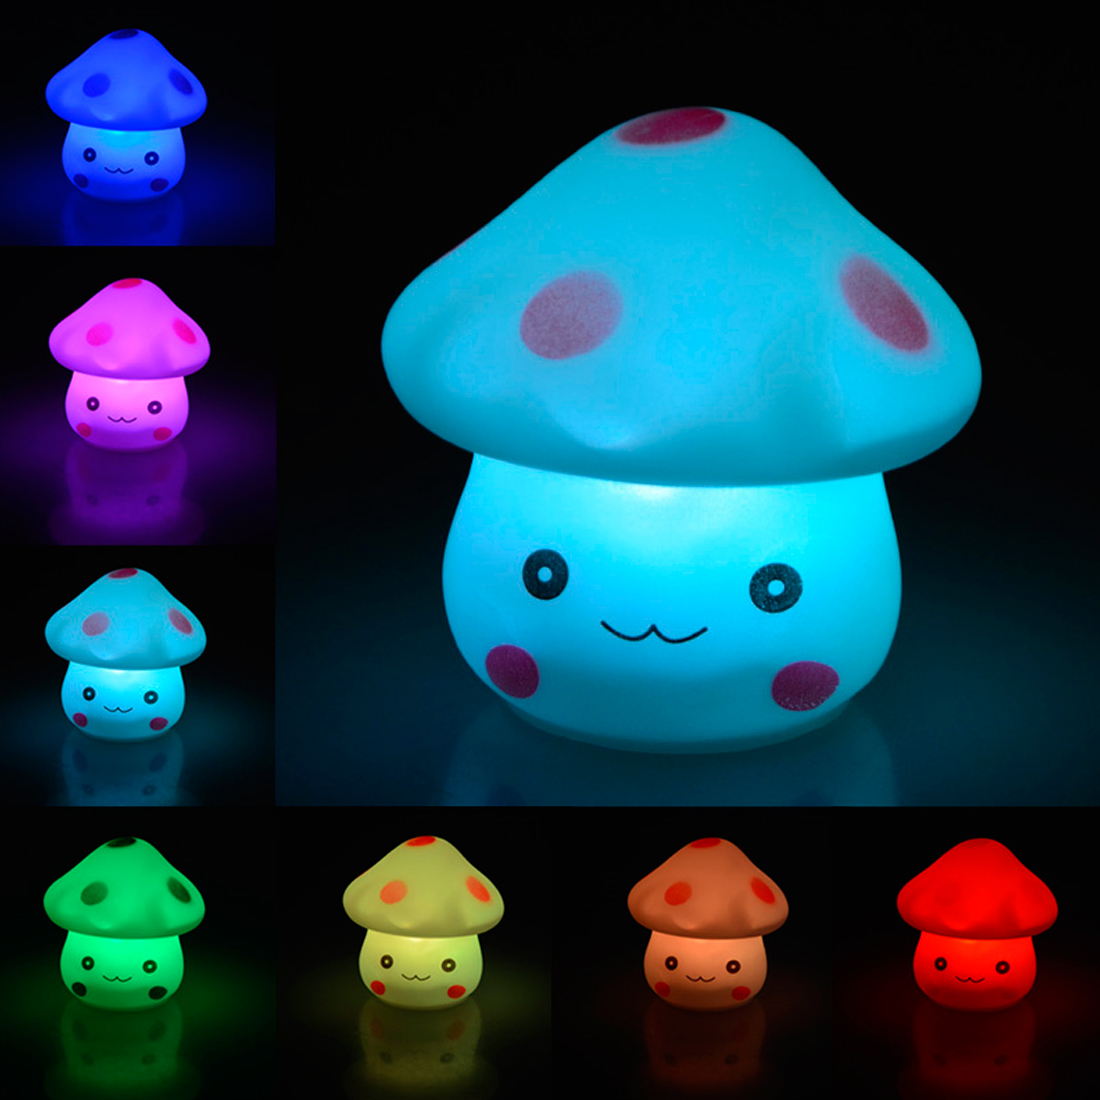 LED Night Light Colorful Mushroom Press Down Touch Room Desk Bedside Lamp for Baby Kids Christmas Gifts Interior Design